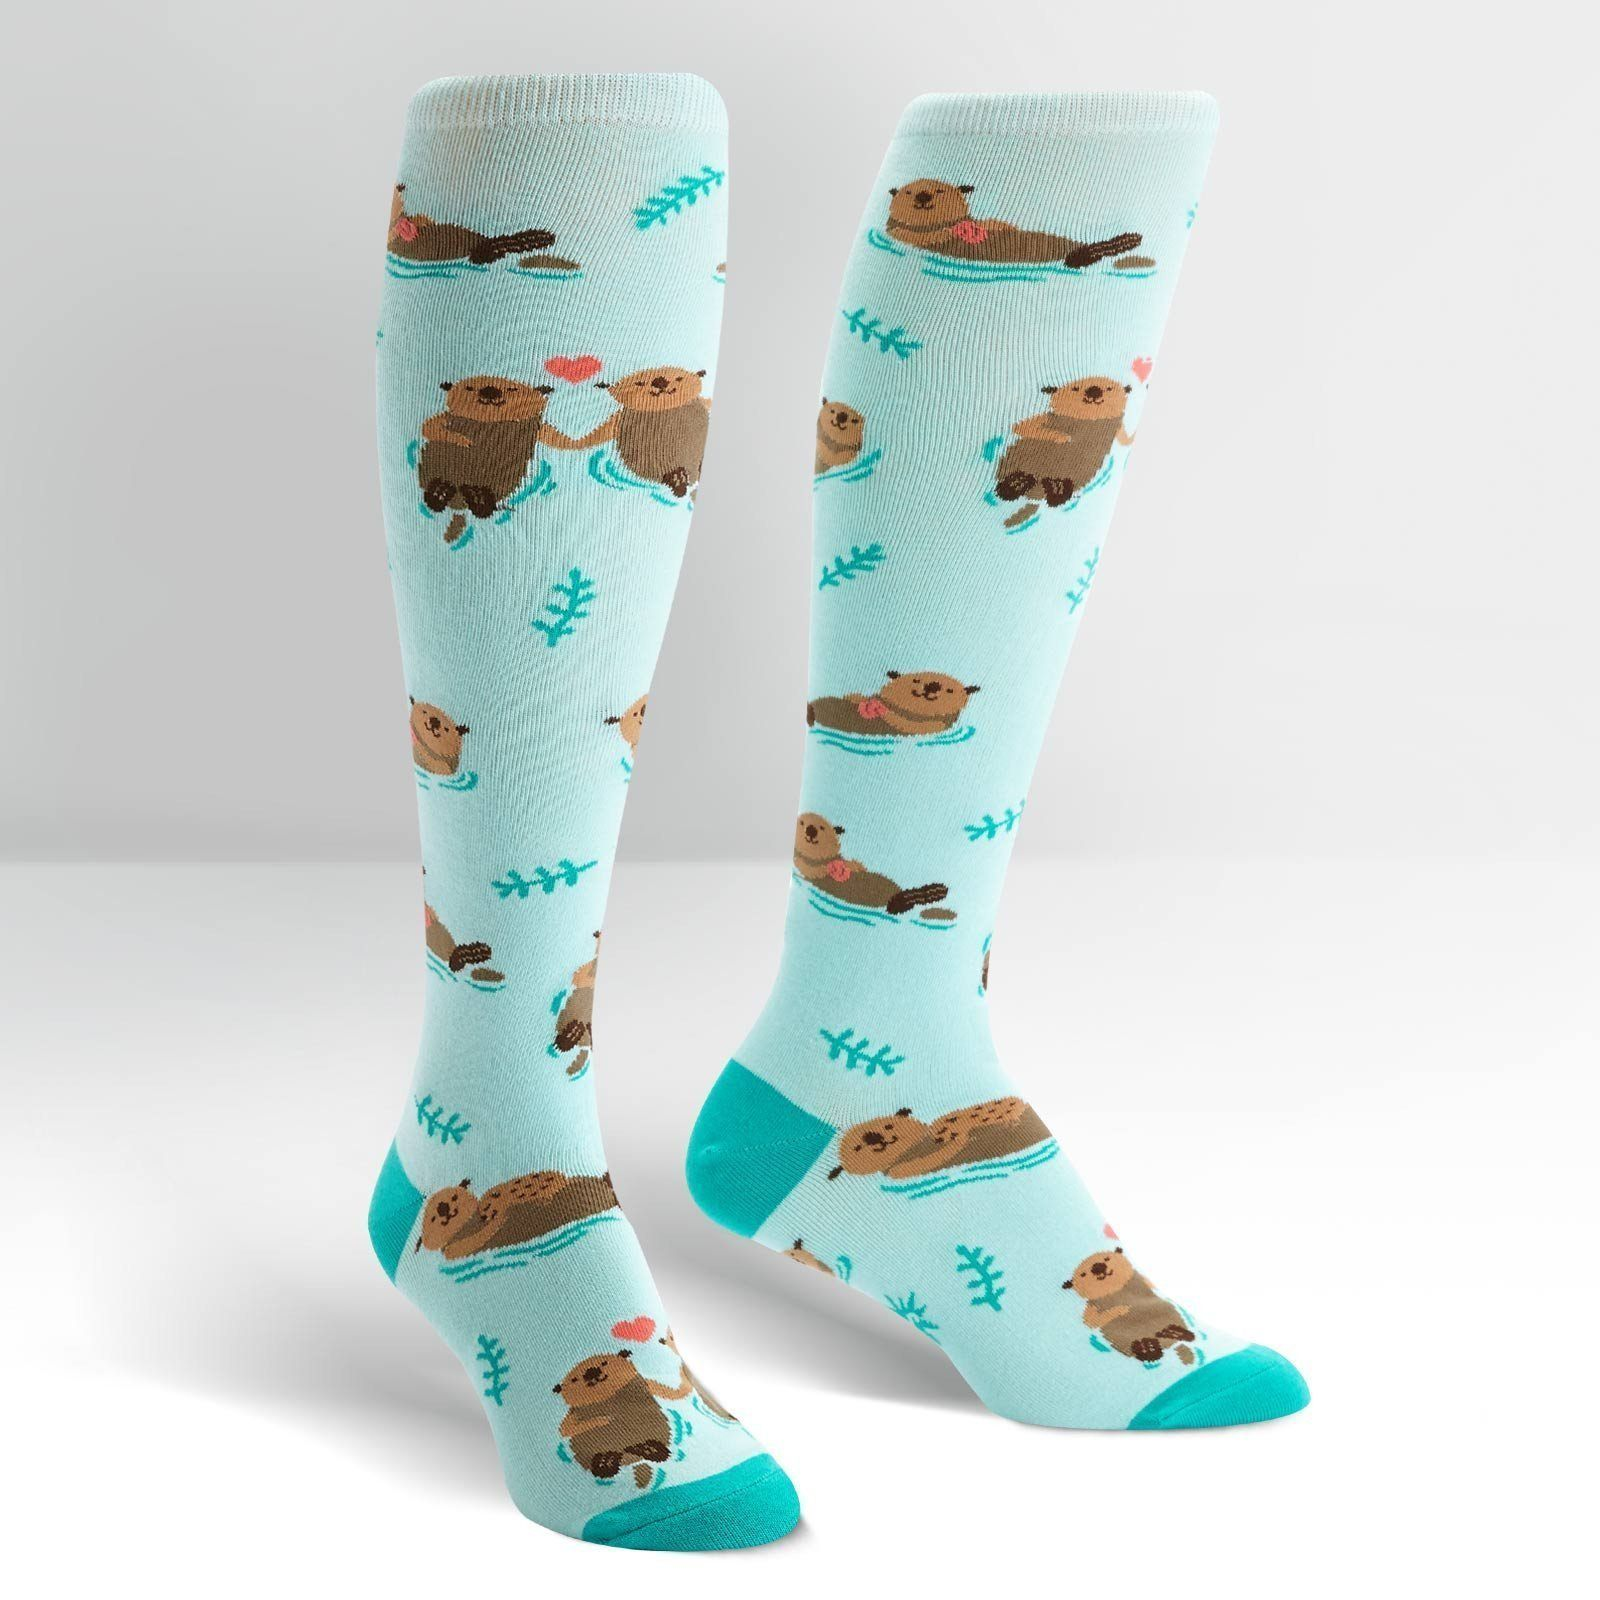 Sock It To Me - My Otter Half Knee High Socks | Women's - Knock Your Socks Off